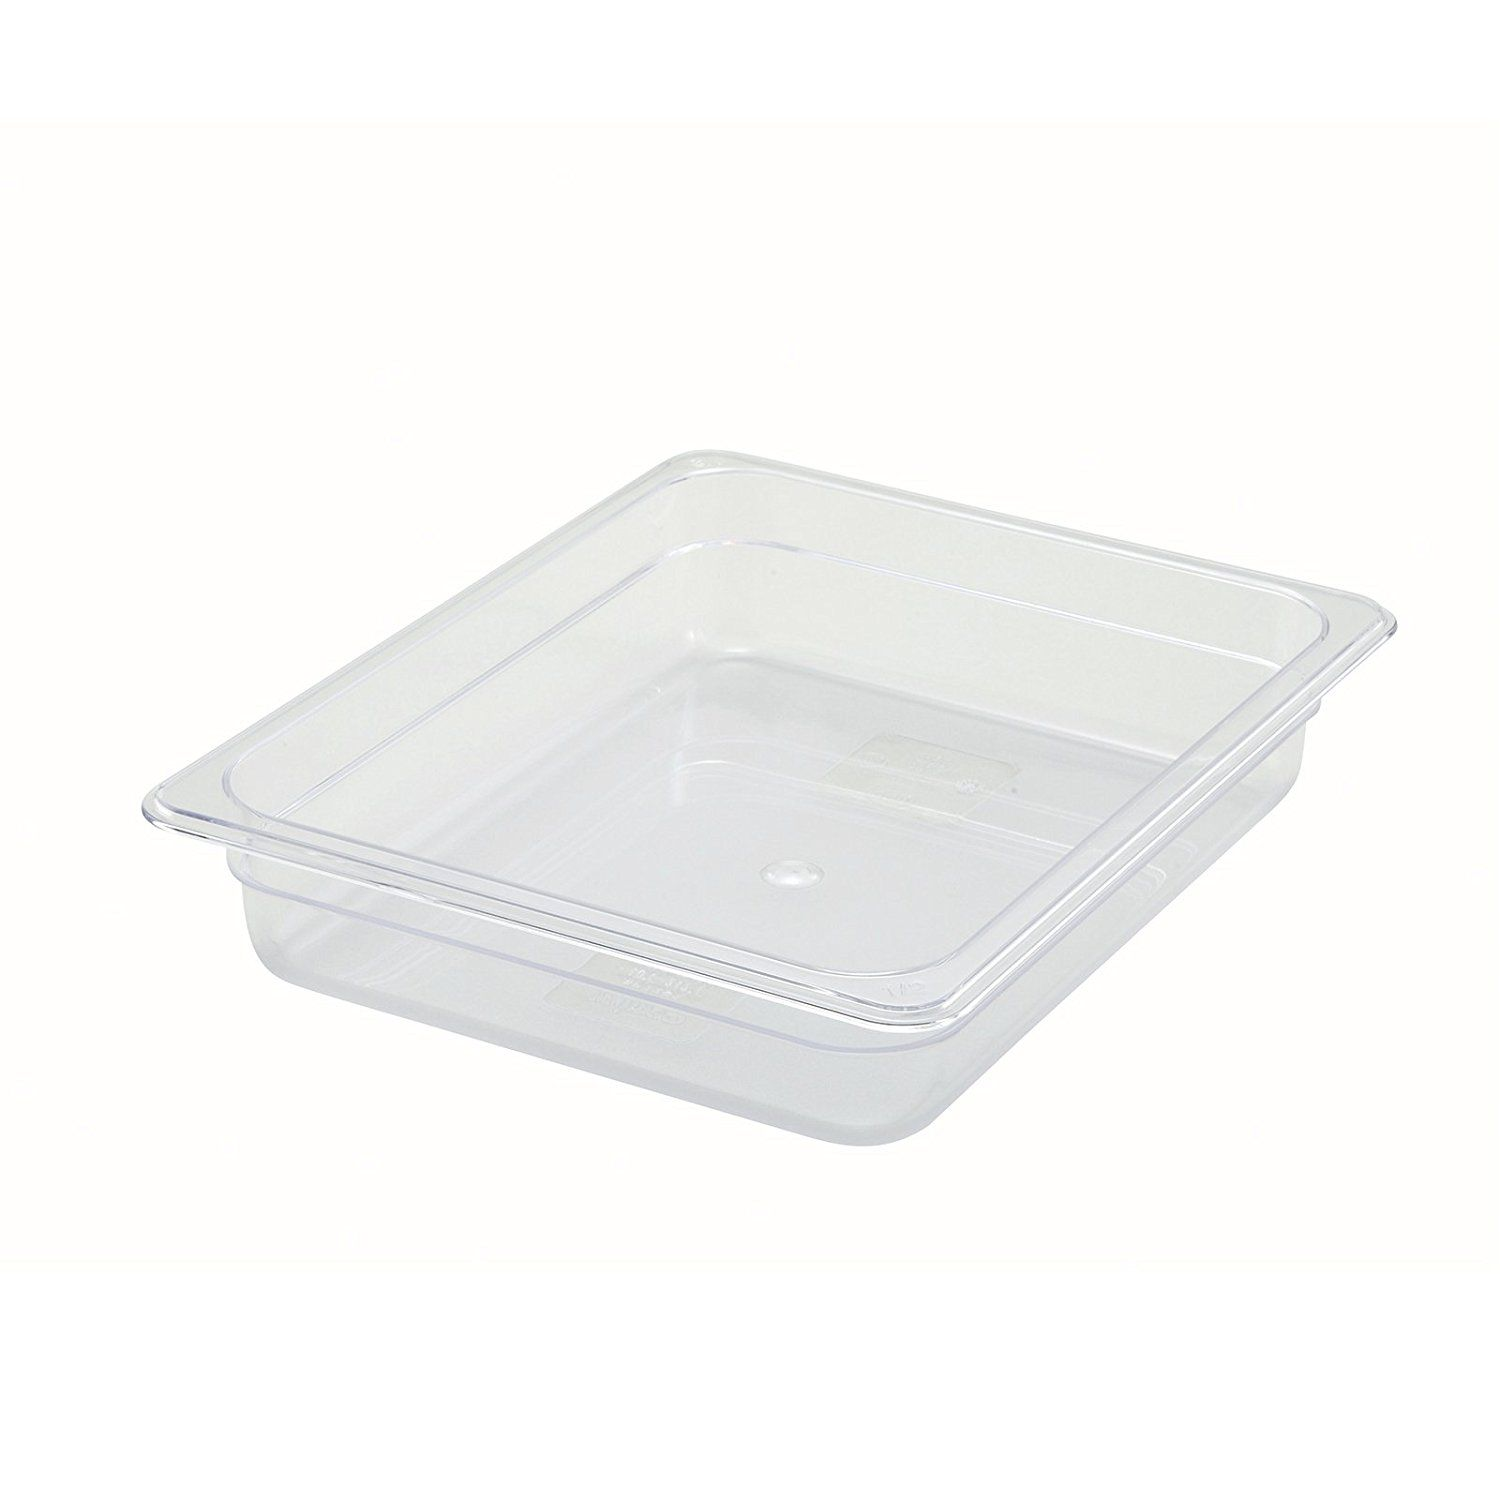 Winco Sp7202 1 2 Size Pan 2 1 2 Inch Awesome Product Click The Image Chef S Pans Winco Cookware Stores Cleaning